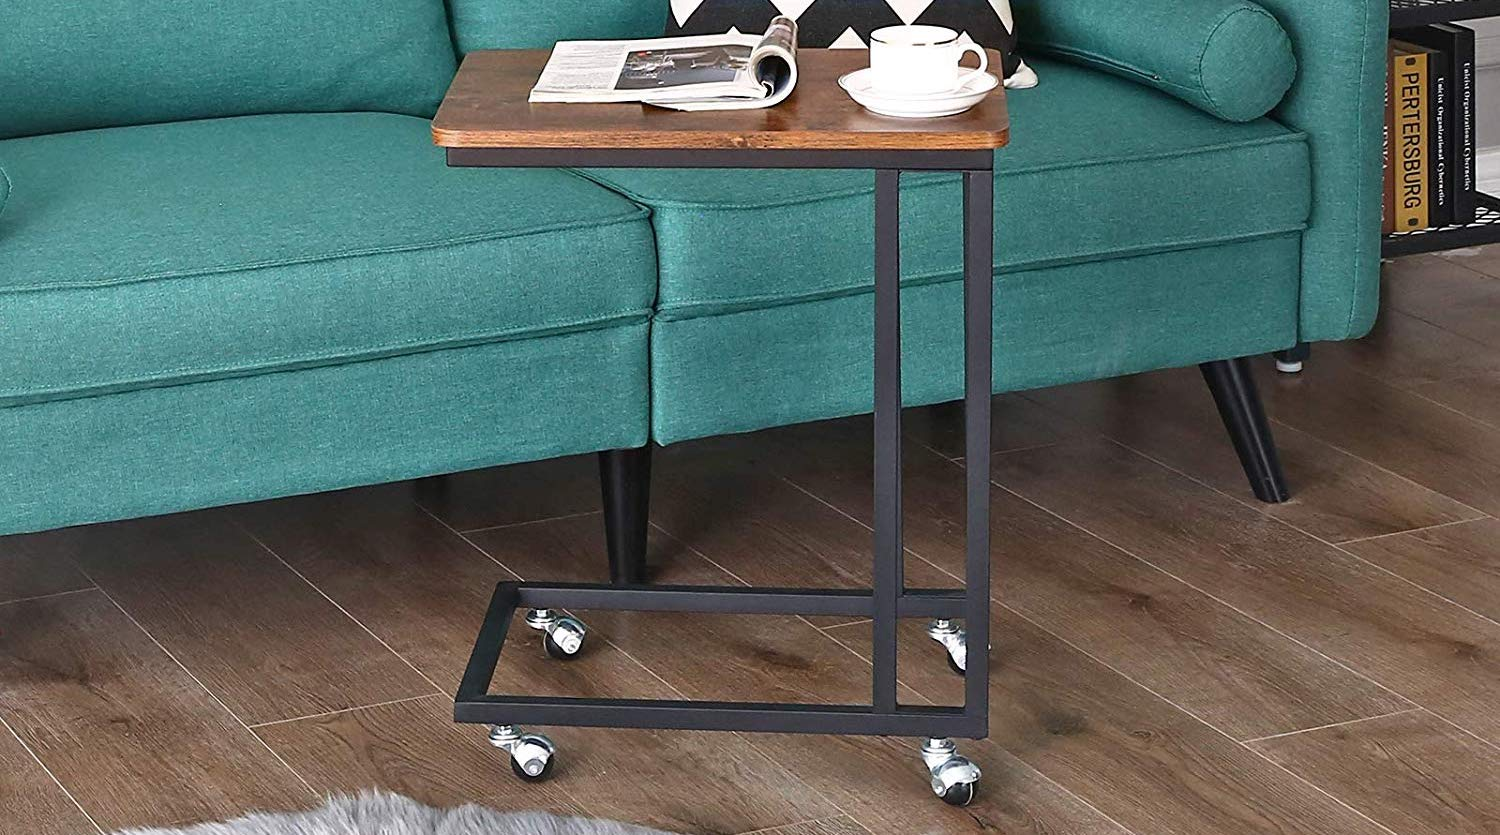 C Shaped Tables In 2020 Reviews